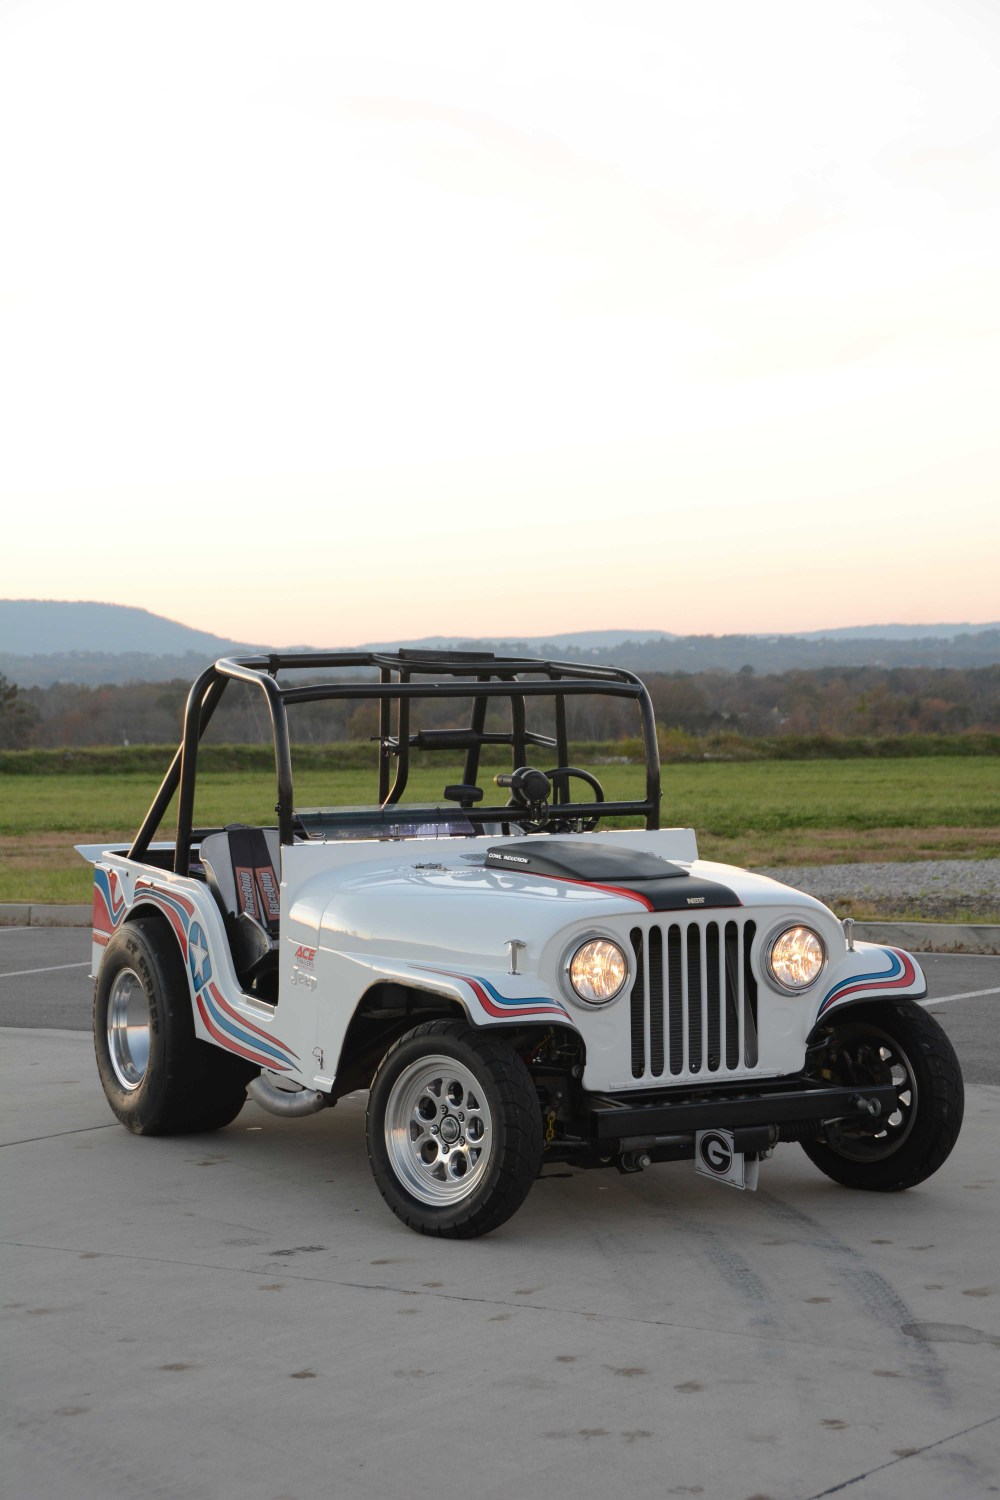 medium resolution of this boosted jeep cj5 is ready for drag racing action